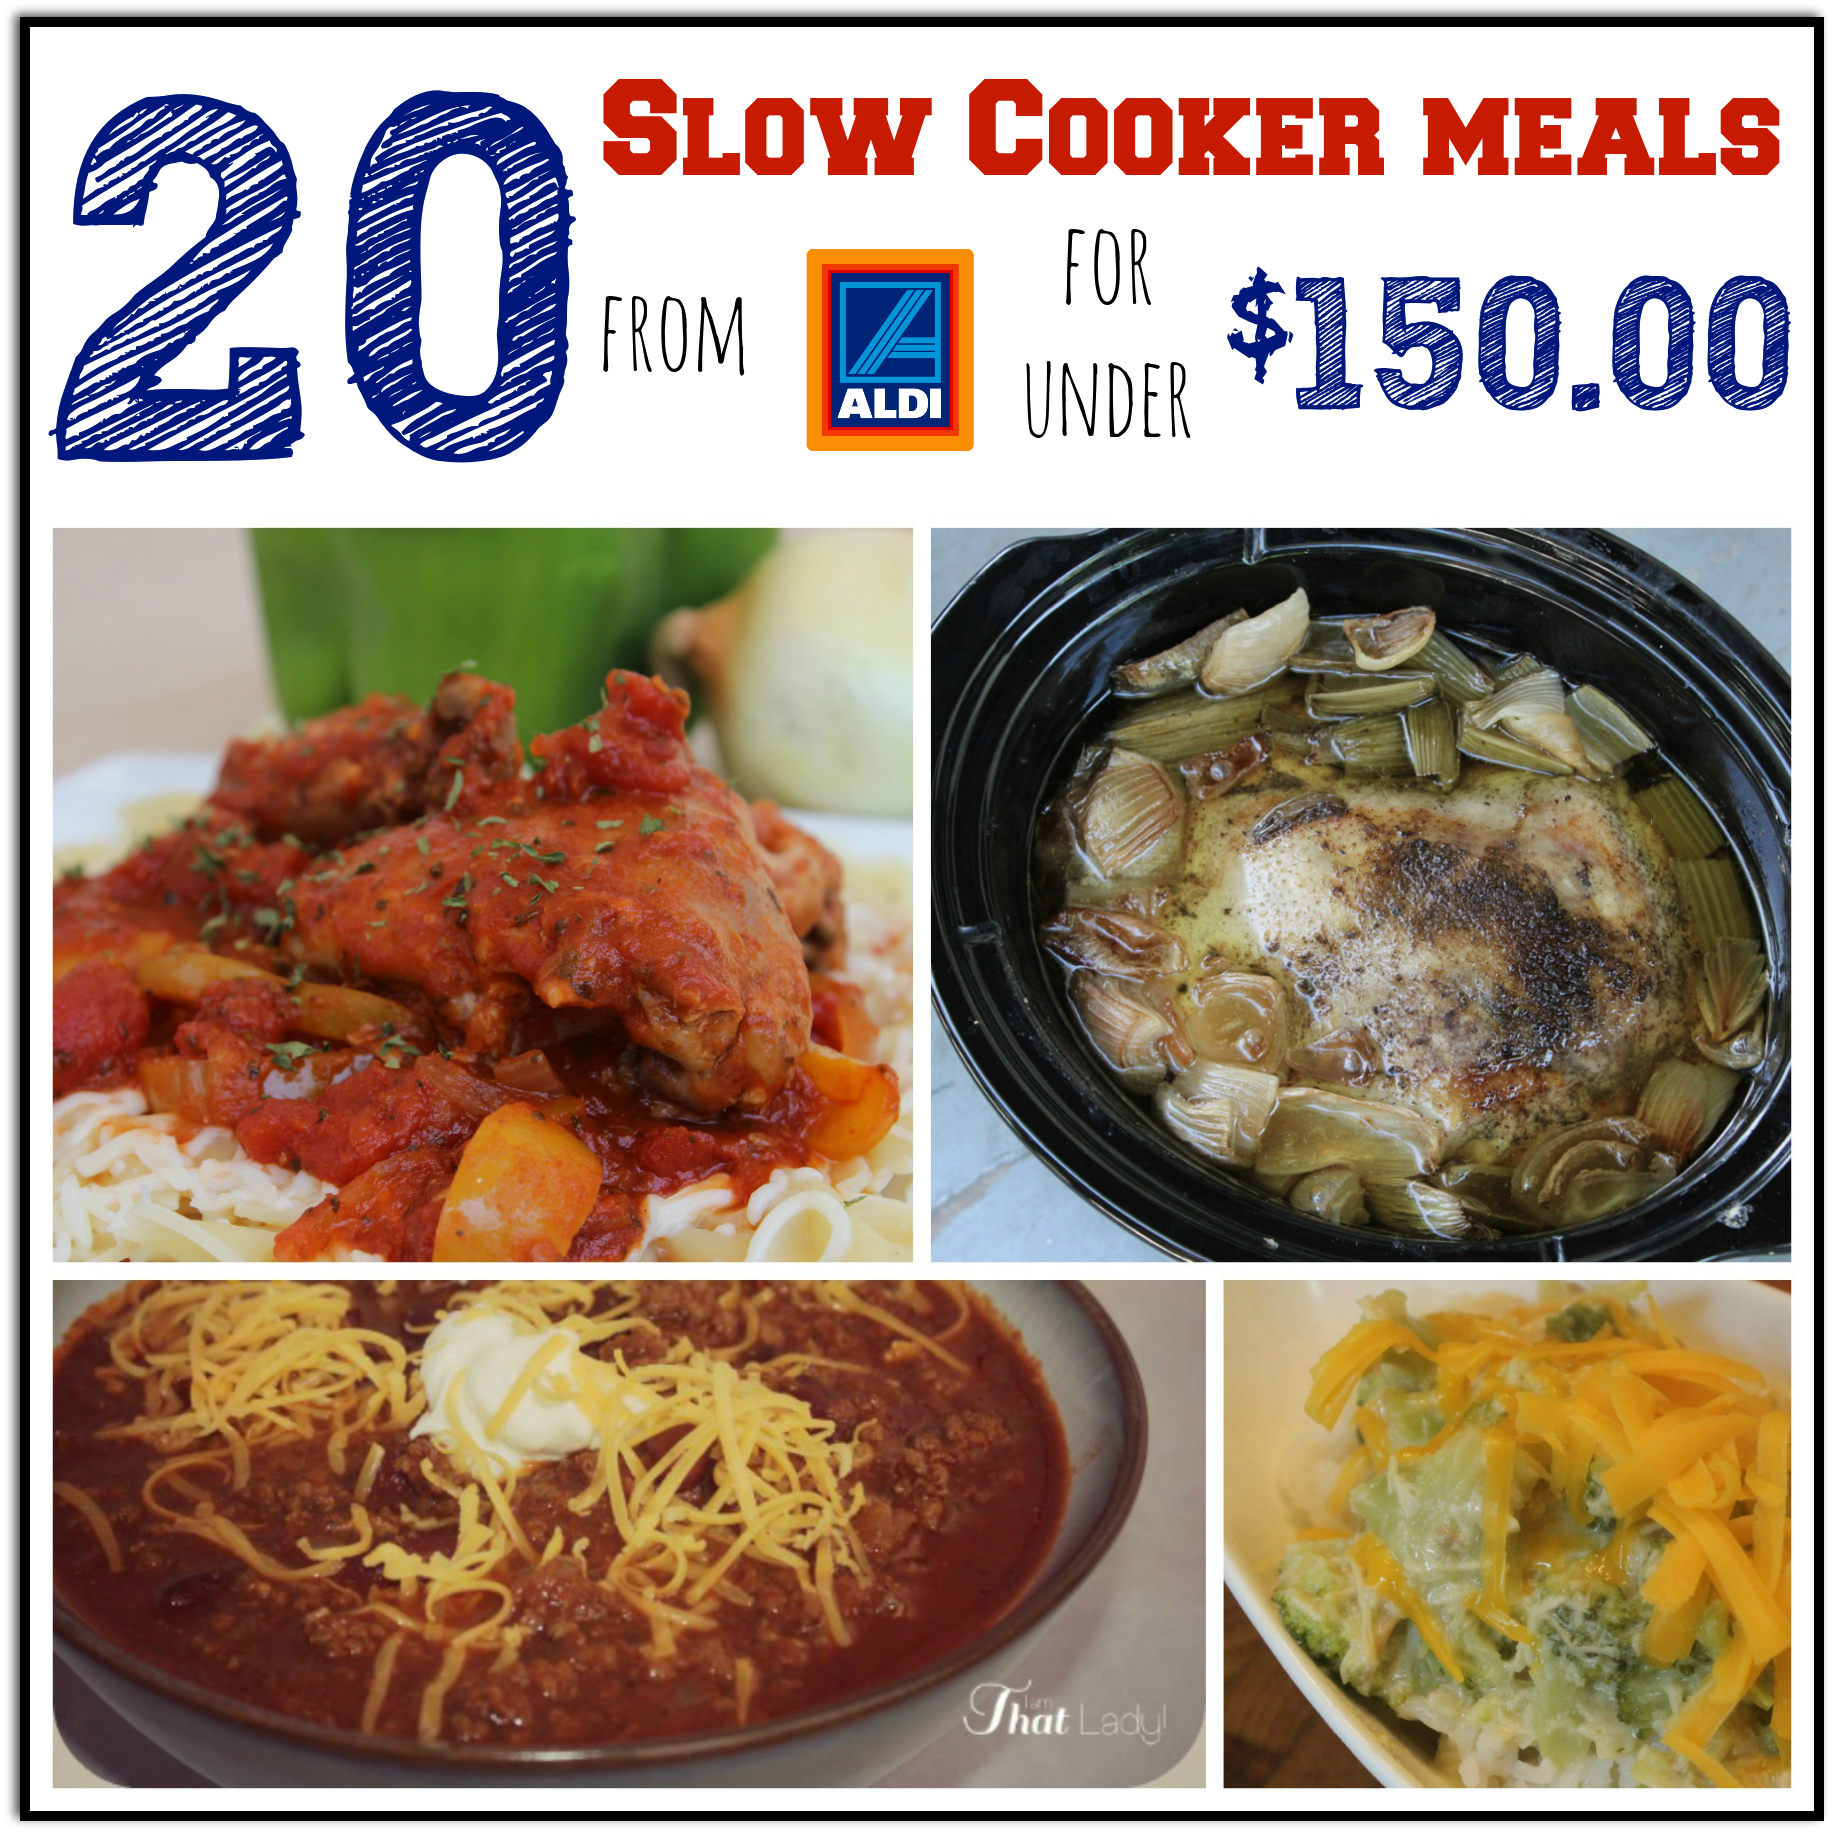 Slow Cooker Dinners: 20 Slow Cooker Meals For Under $150.00 At Aldi